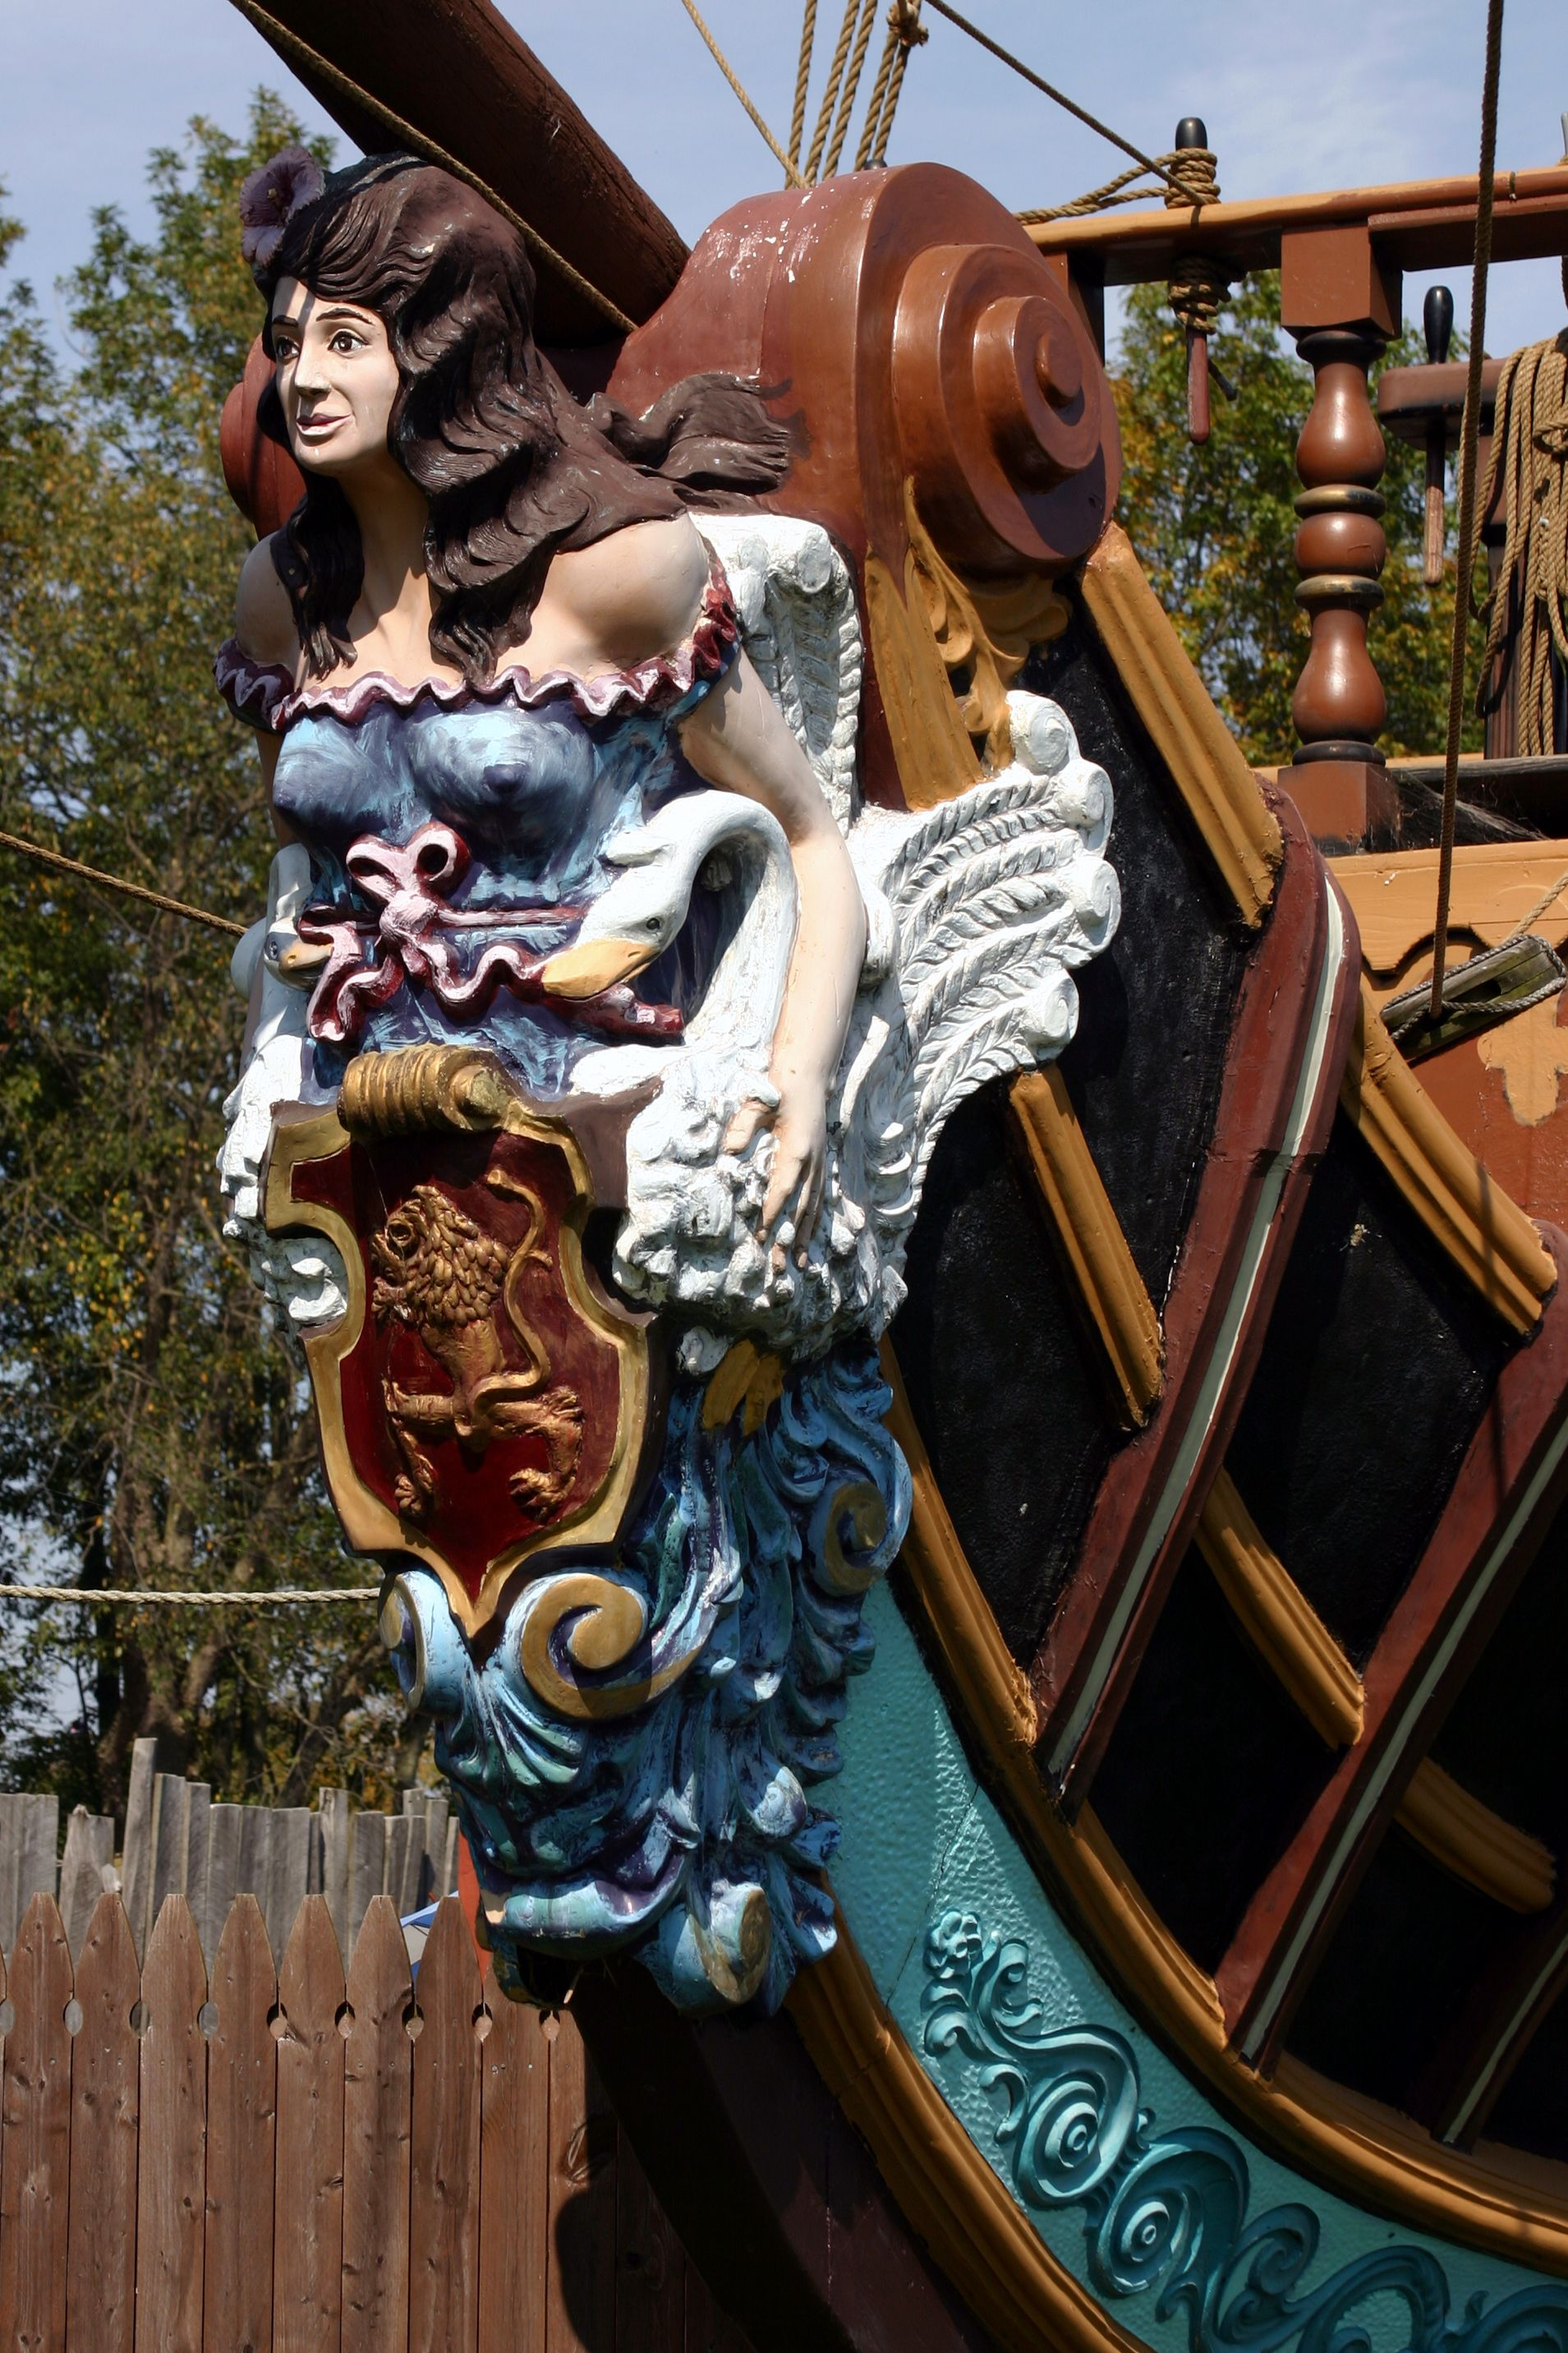 ship's figurehead